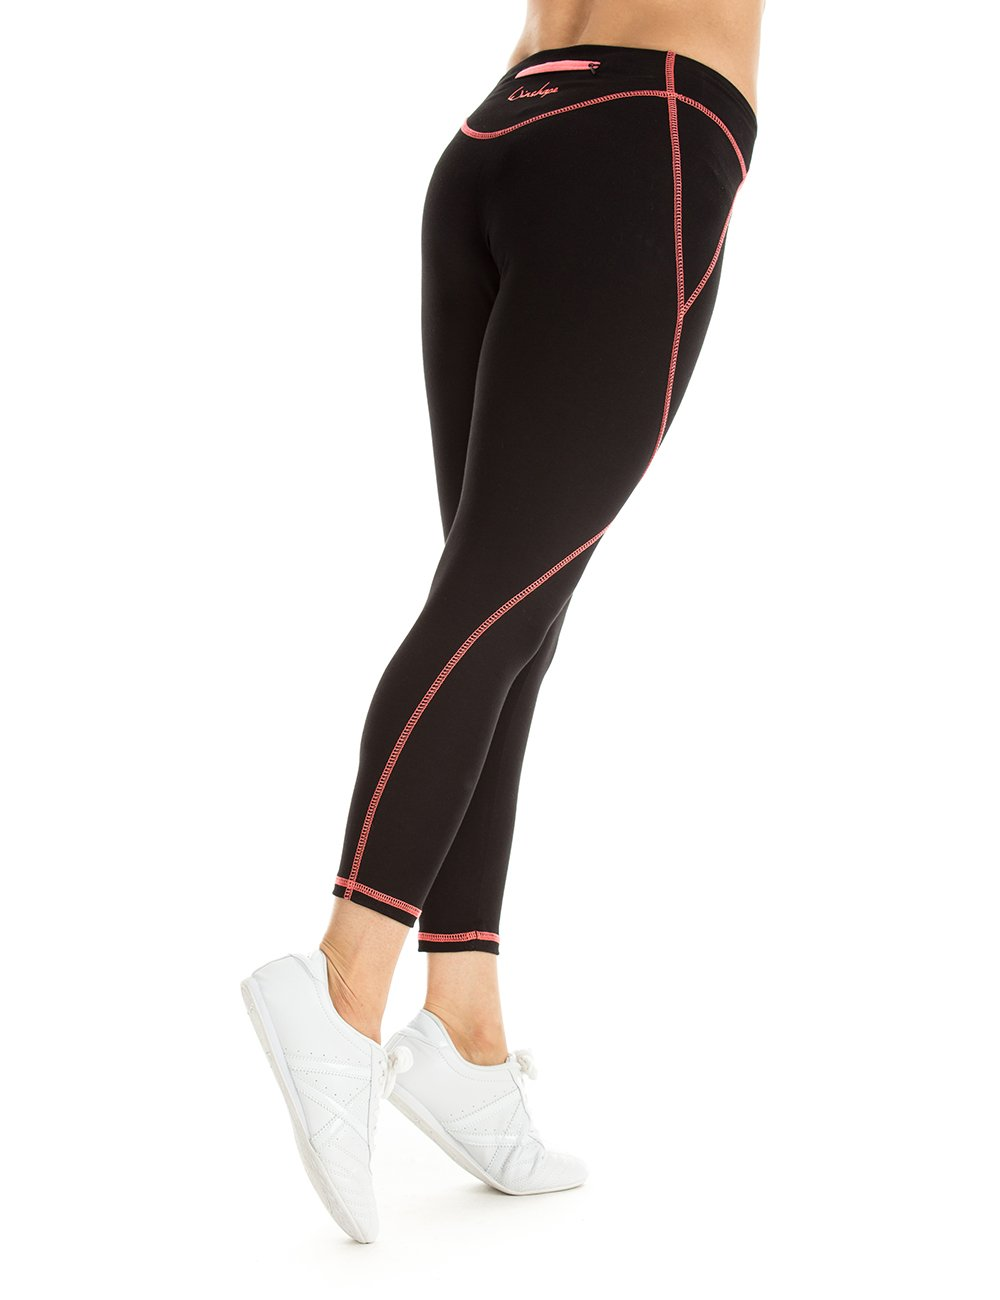 Survêtement Winshape De Fitness 78legging Collant Wtl3 Pantalon E2WD9IH